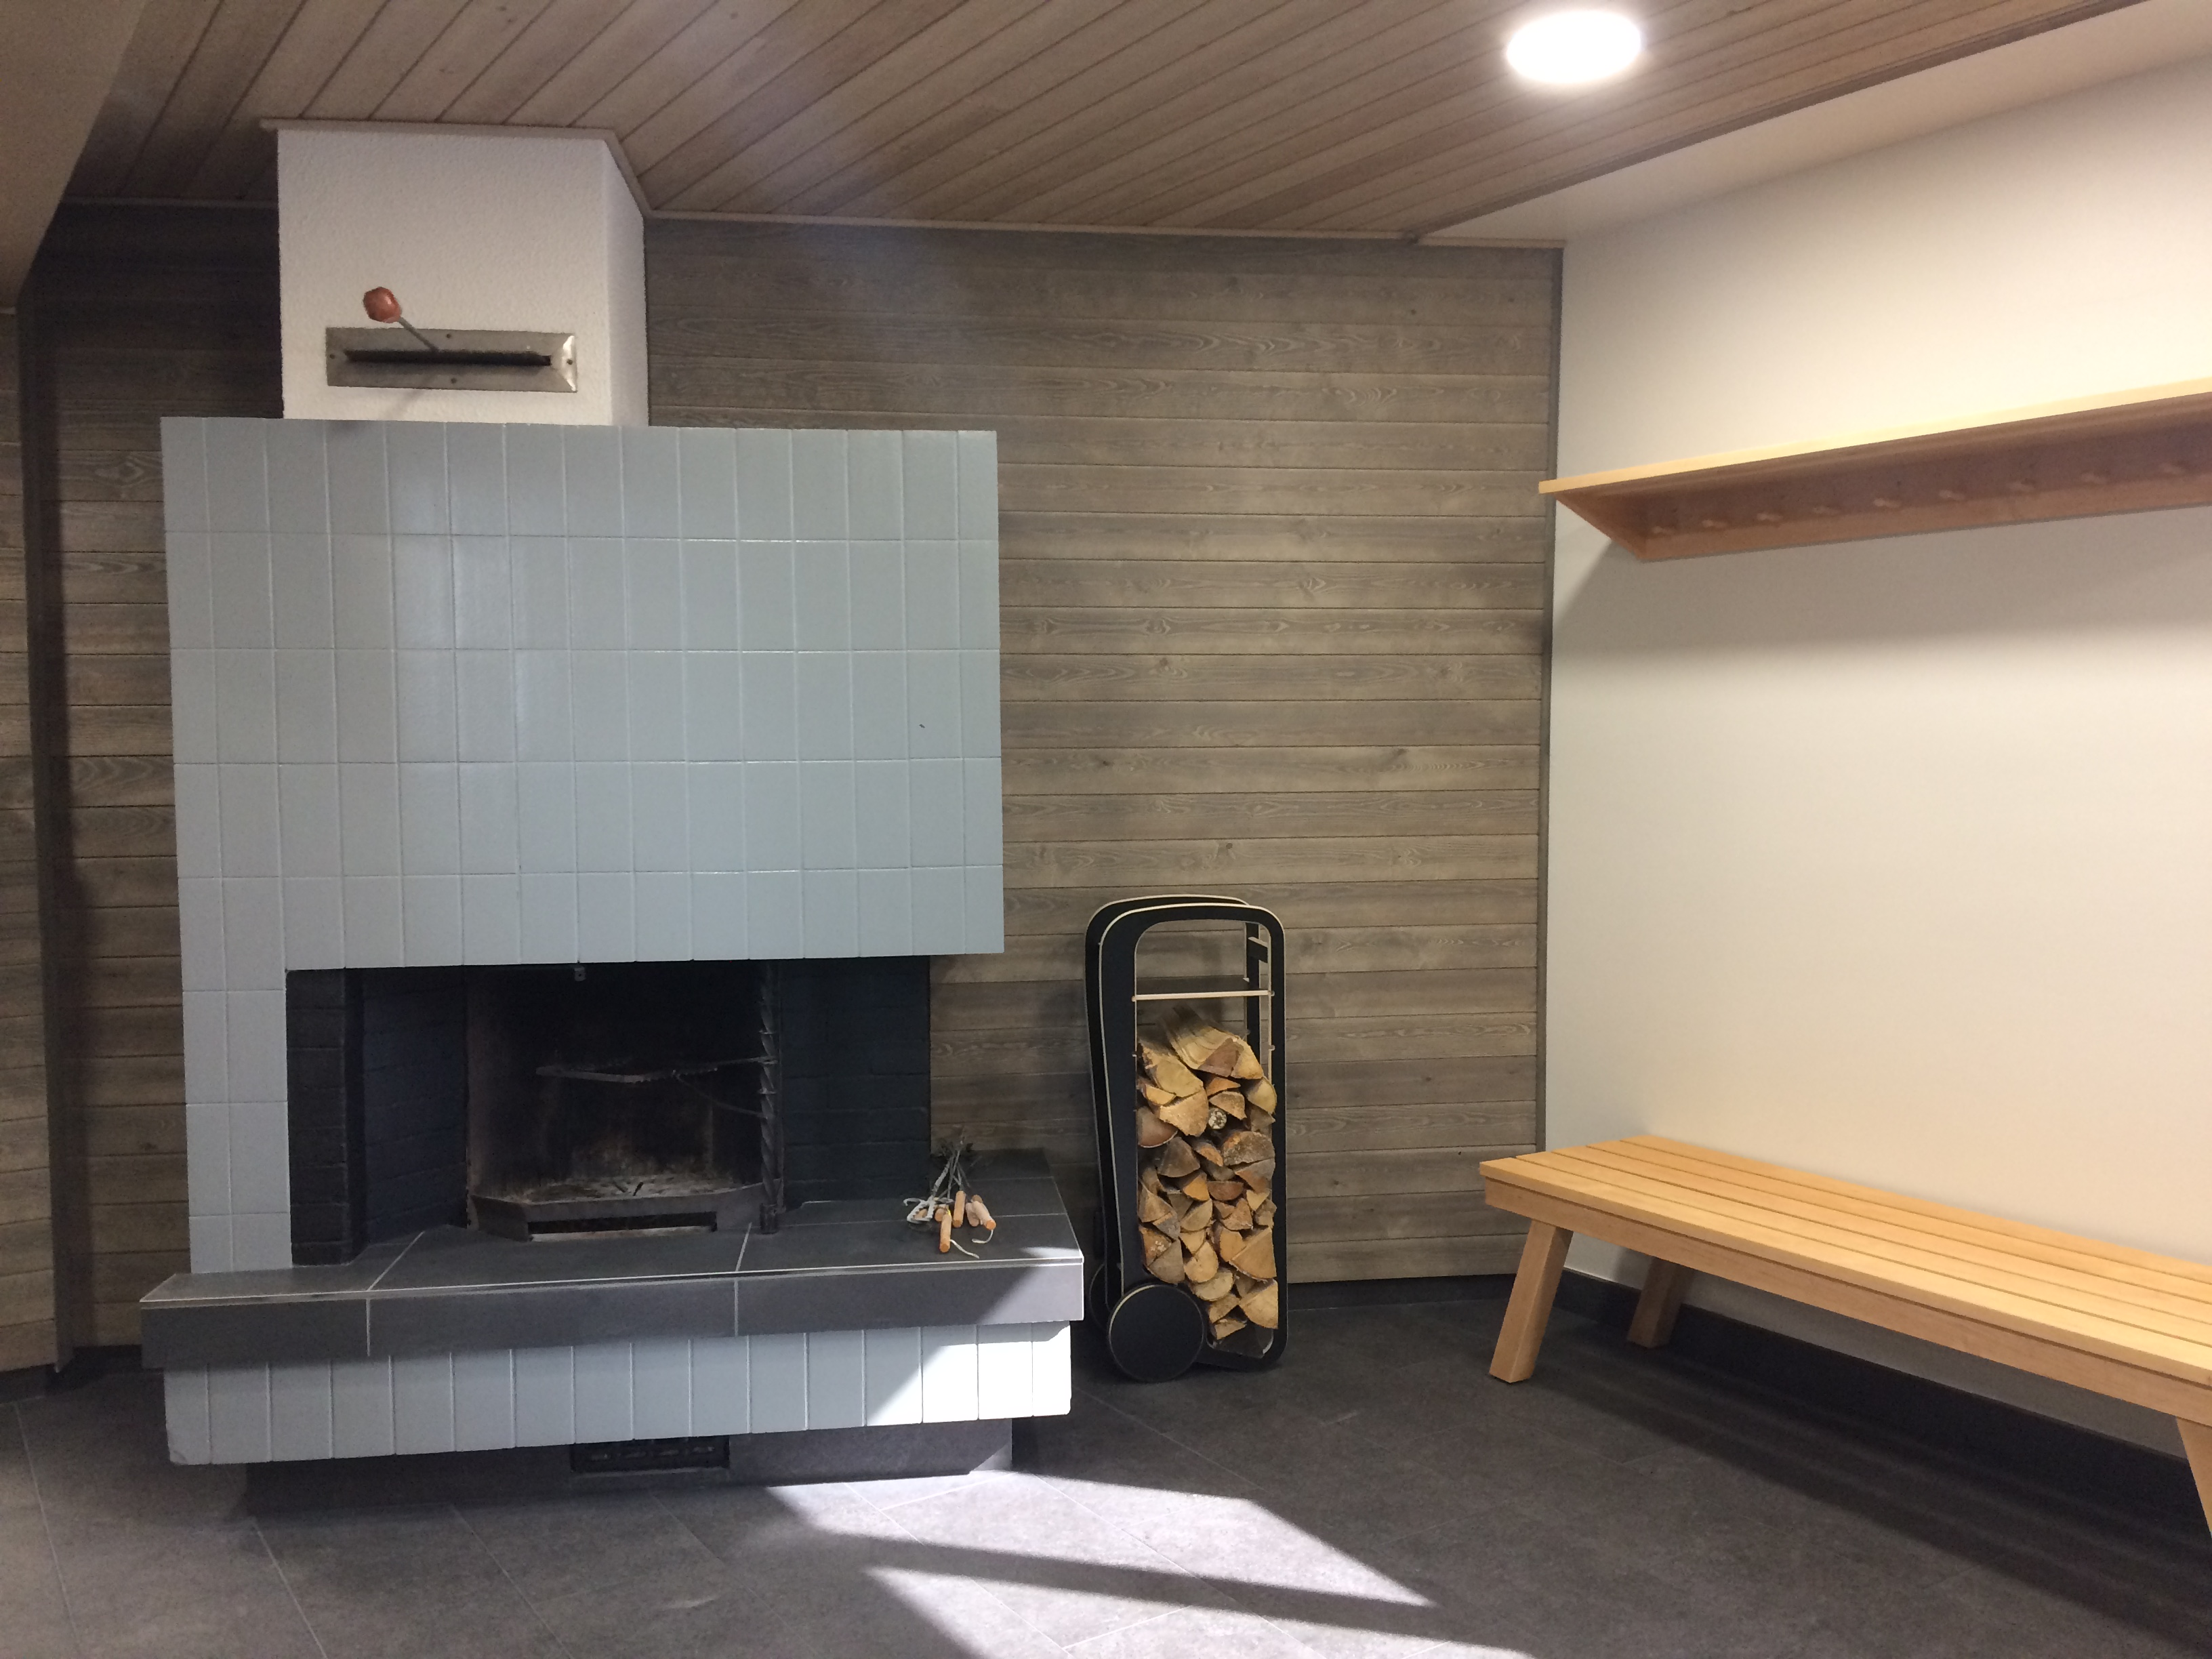 fleimio trolley original (black) in new Pajulahti sauna's fireplace room #3